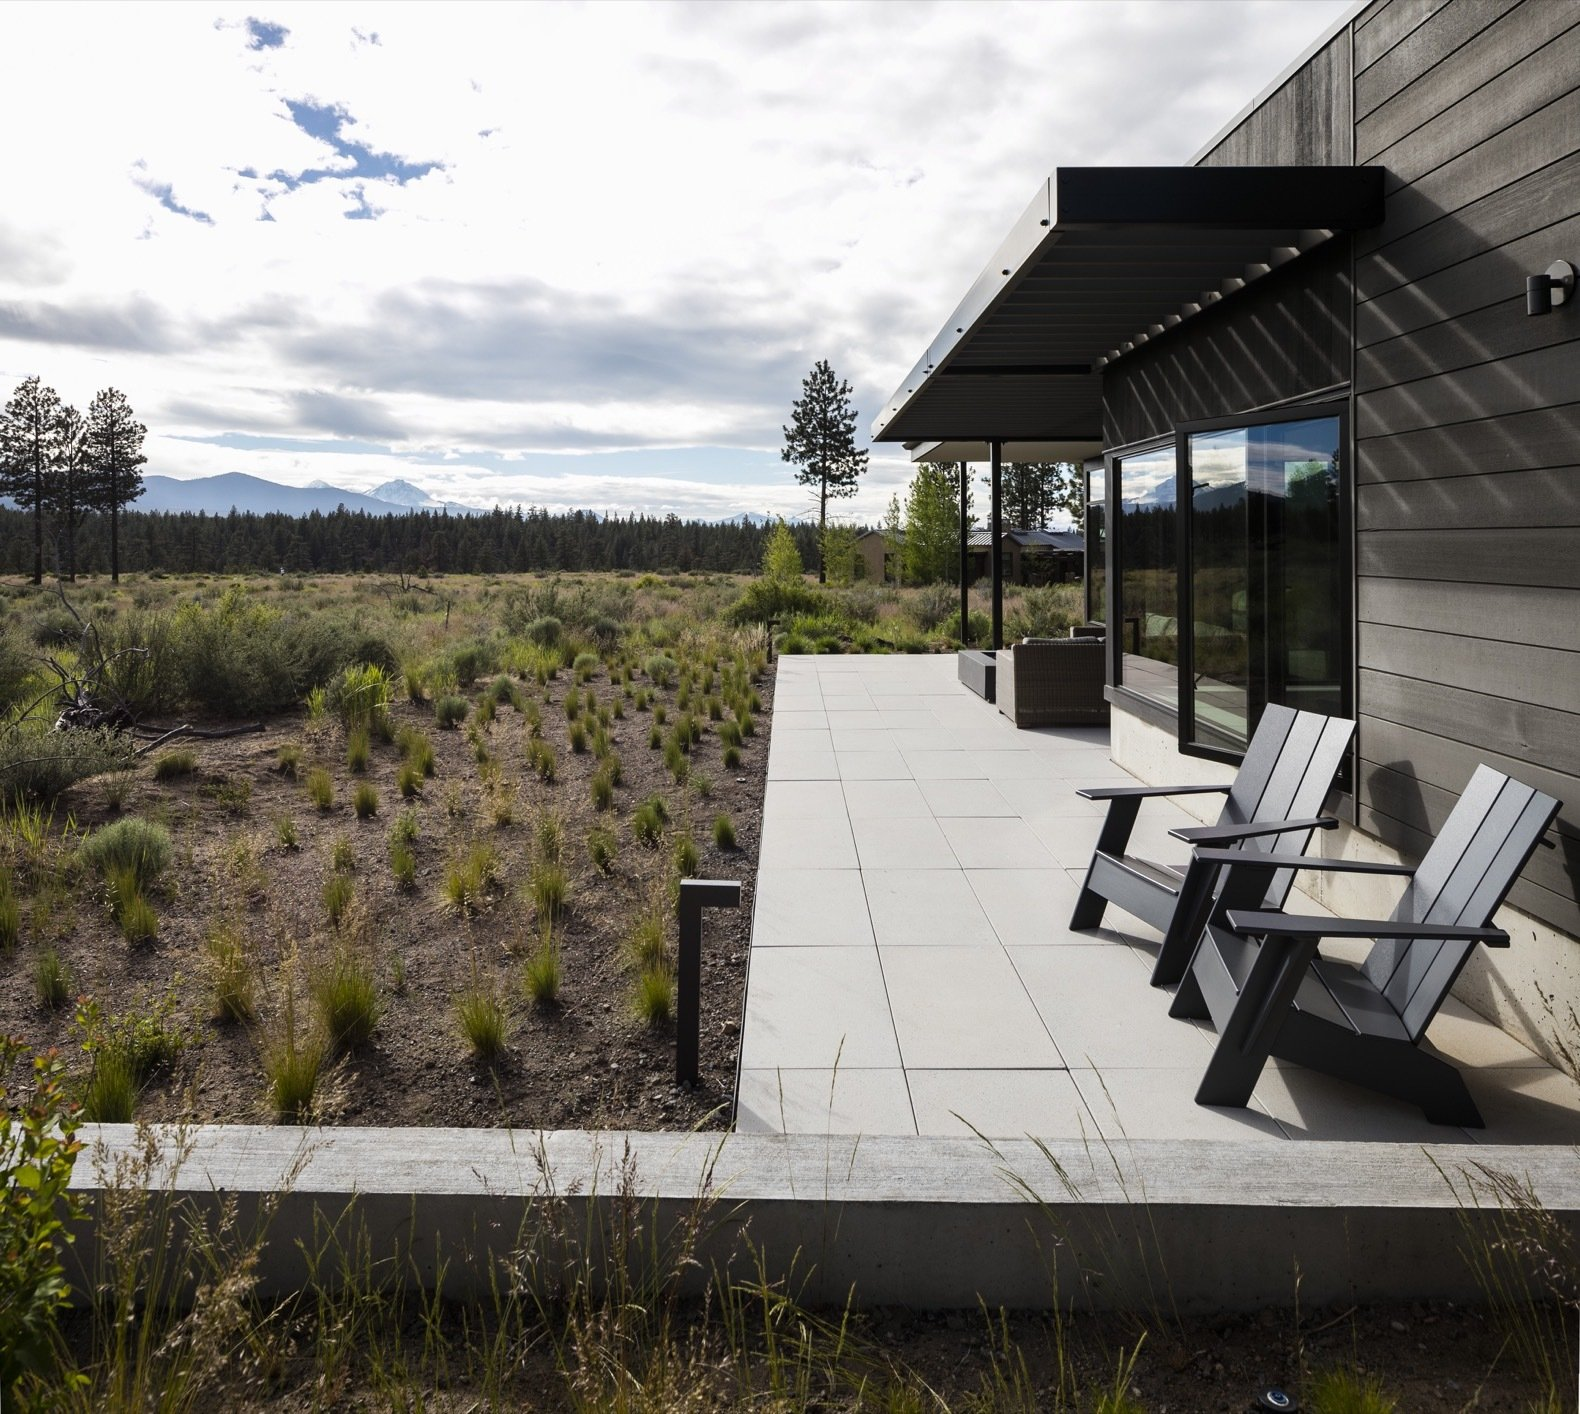 Outdoor, Back Yard, Shrubs, Concrete, Large, Trees, Grass, and Landscape Aluminum-framed sliding doors connect the living room to an outdoor patio.   Best Outdoor Landscape Photos from A High Desert Home Slides Open Like a Swiss Army Knife